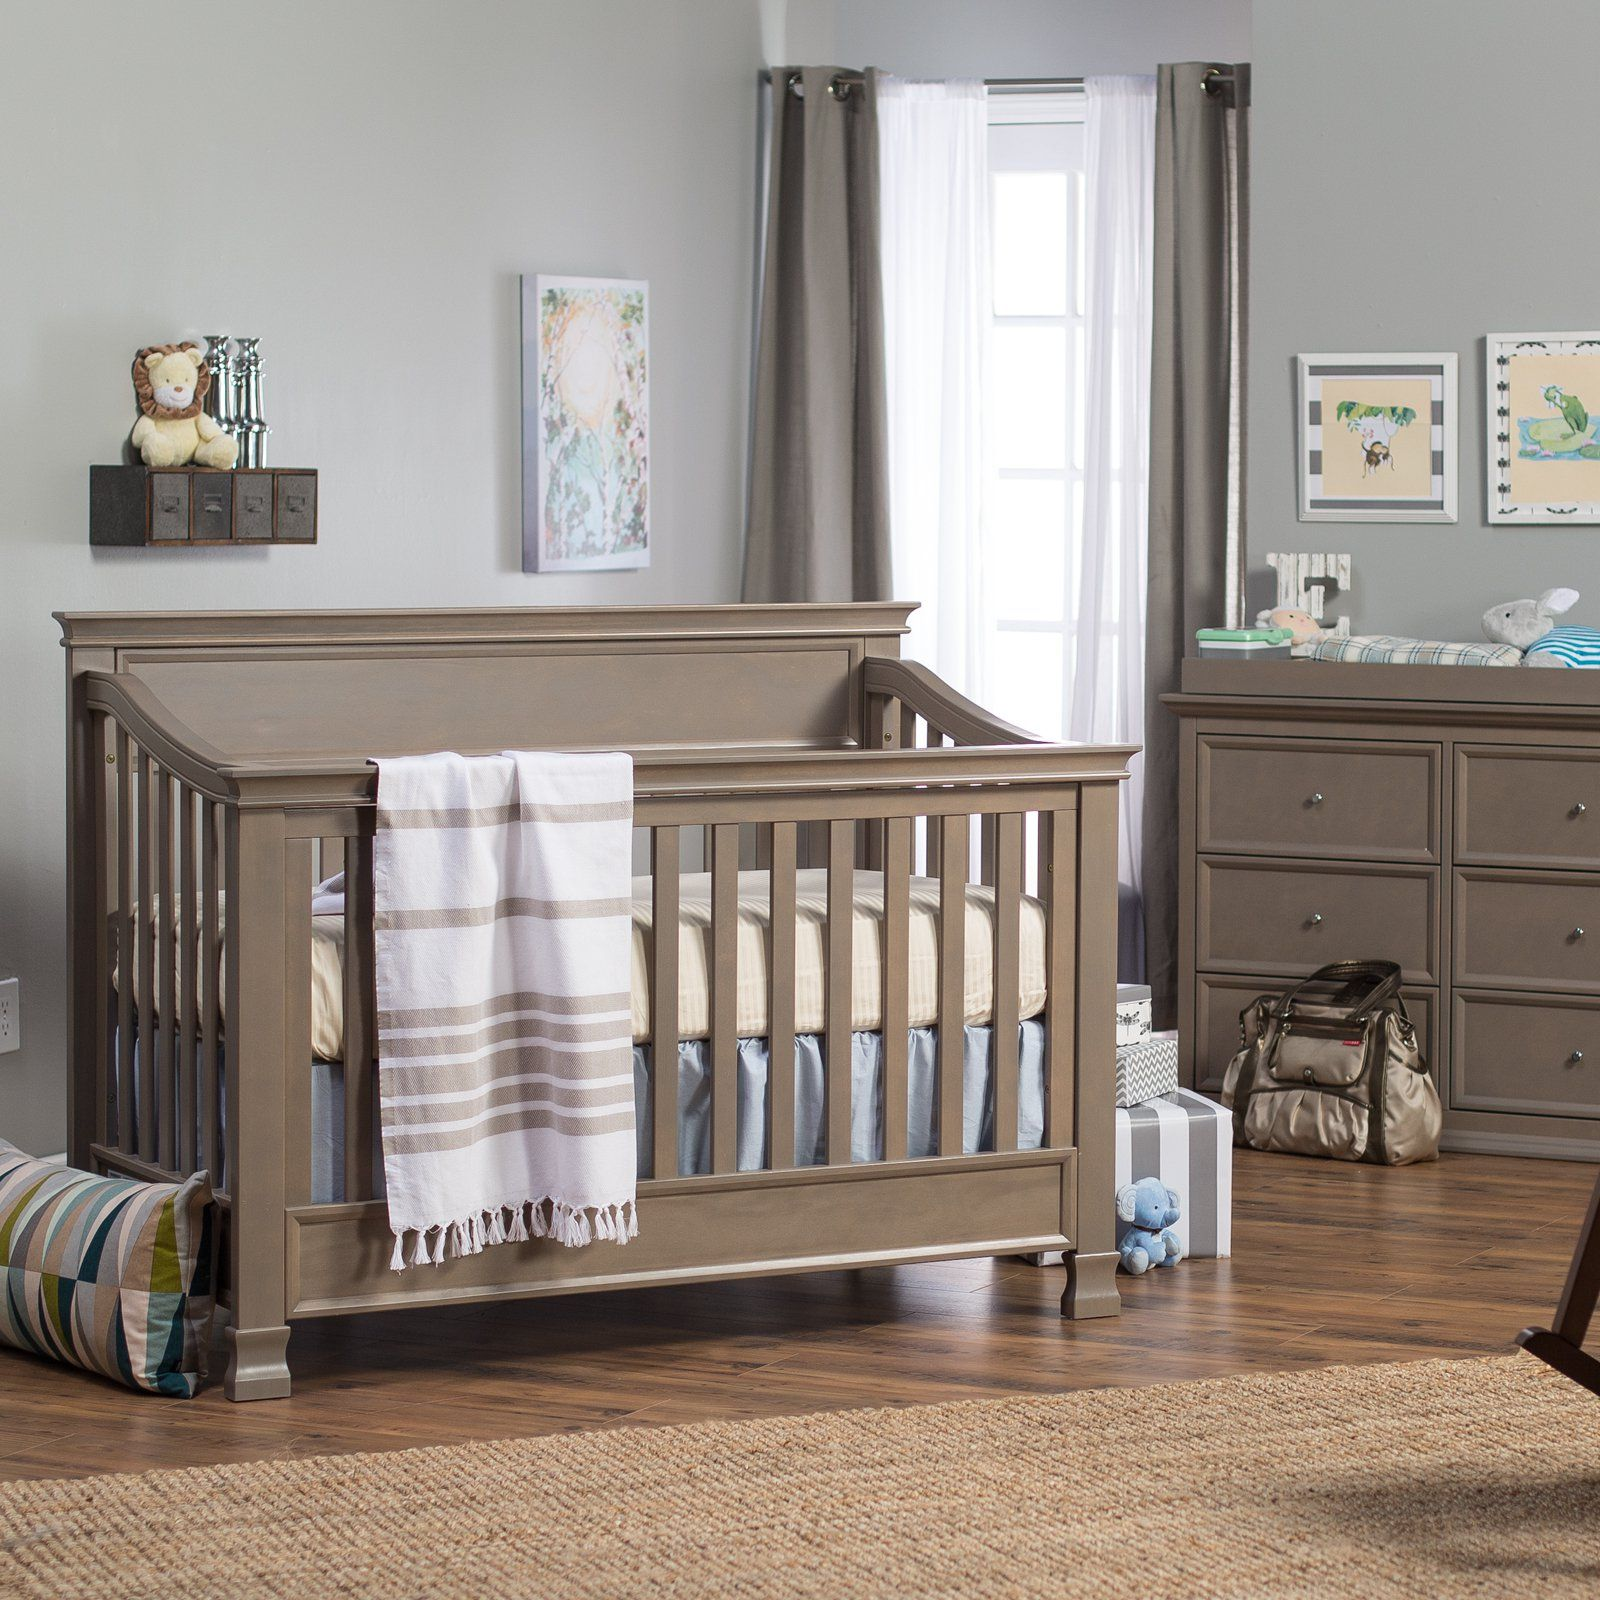 Crib Toddler Bed Daybed Full Size